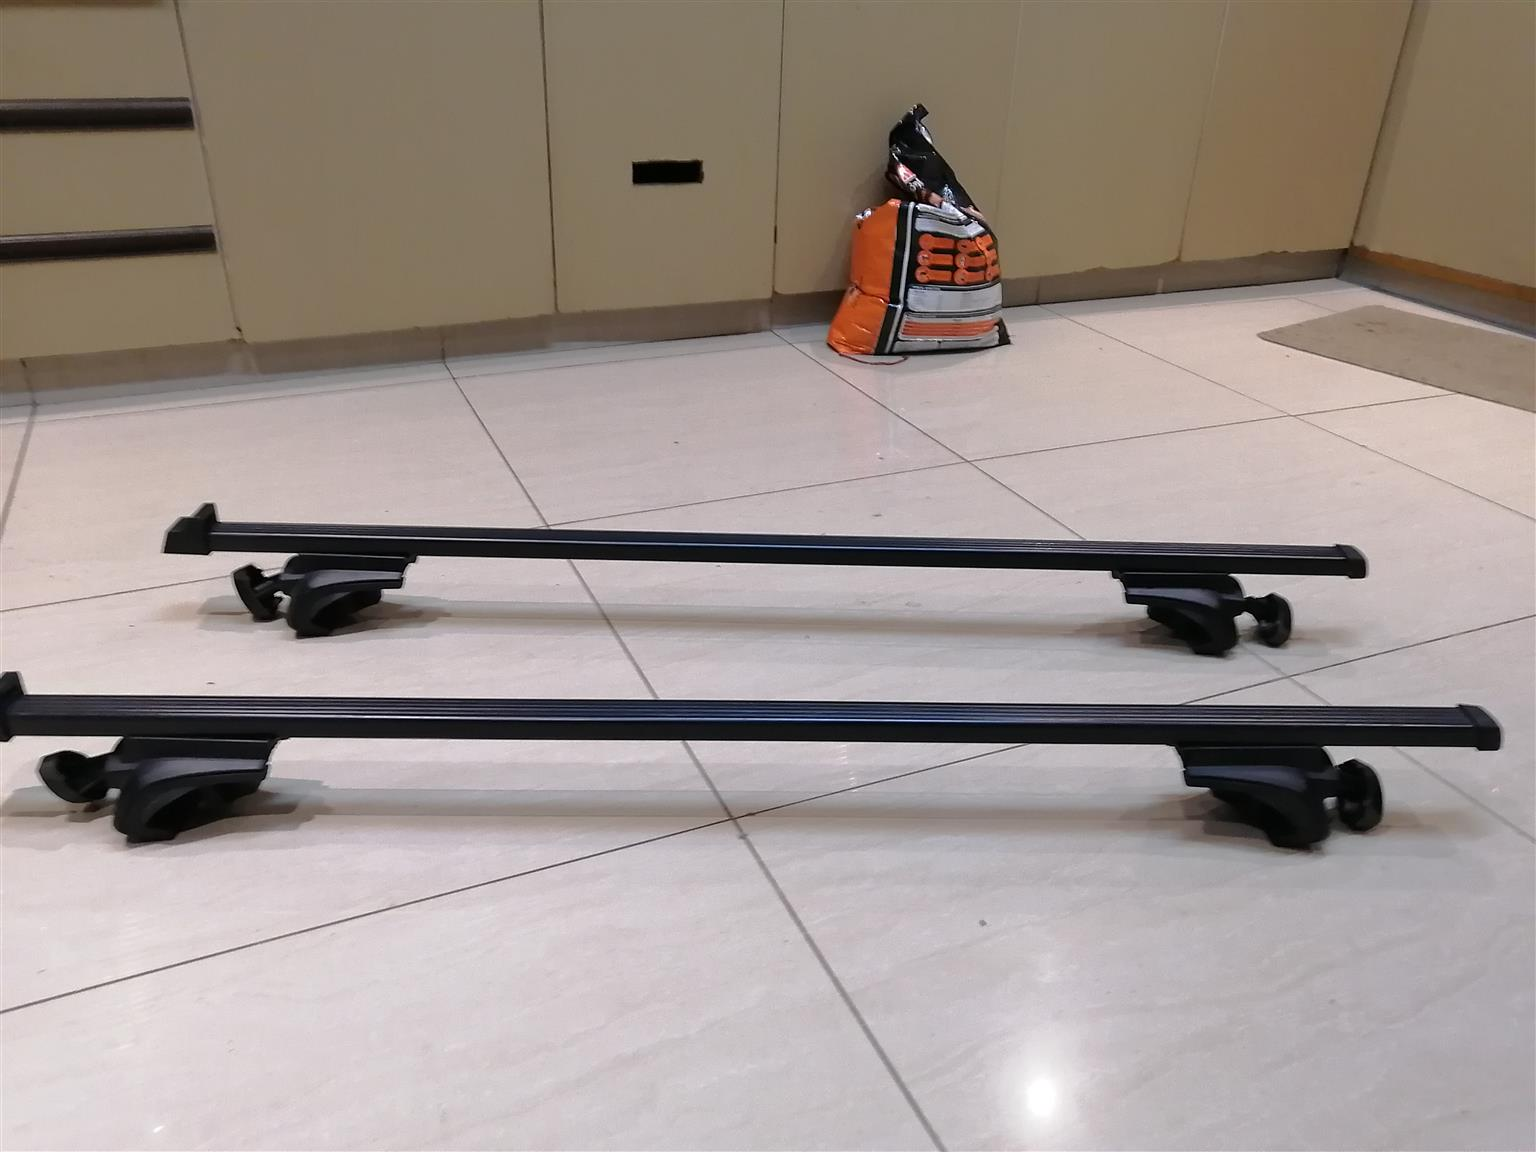 THULE ROOF RACKS GOOD AS BRAND NEW,  ONLY USED ON VEHICLE FOR 2 MONTHS.